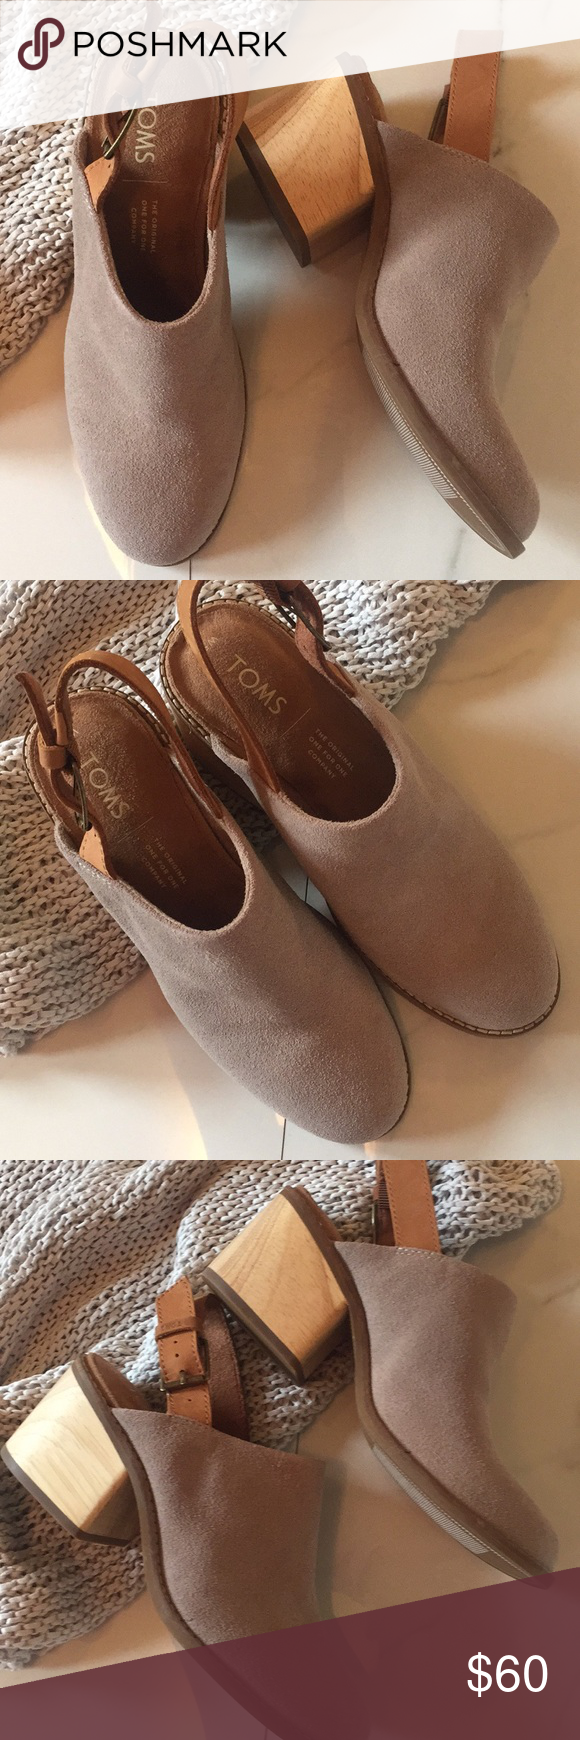 cc26b269c5a Toms Leila slingback mule Toms Leila slingback mule is NWOT. Leather  slingback strap and wood grain heel blend well with the taupe suede upper  to give this ...